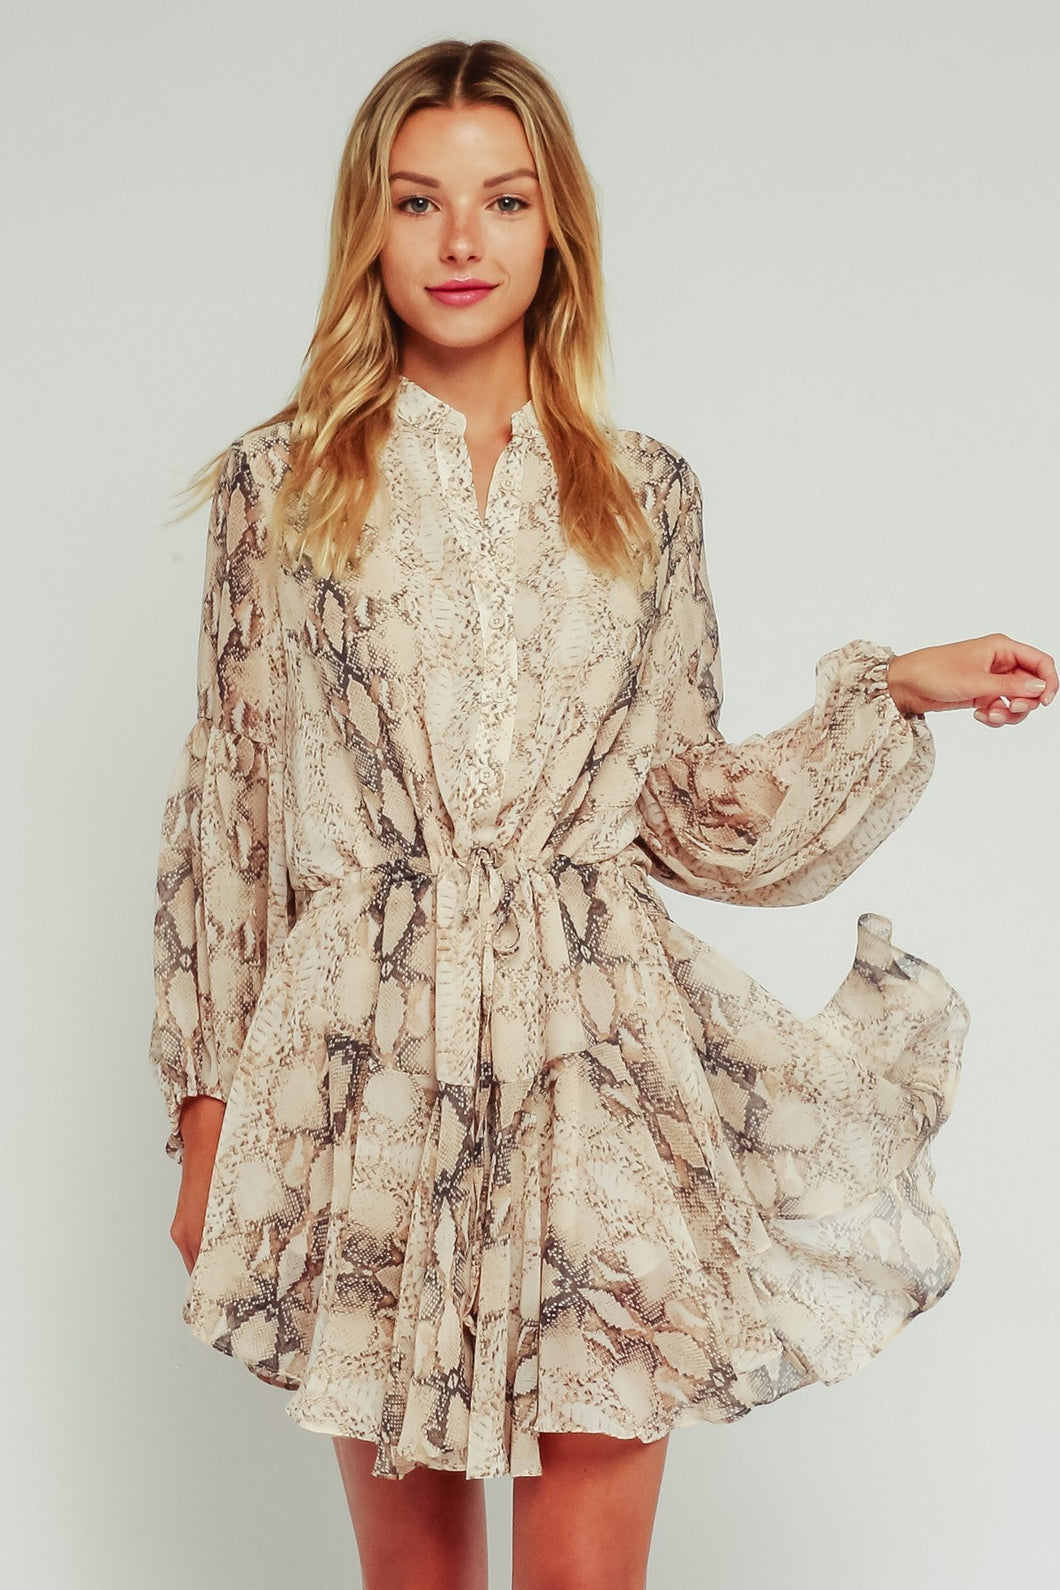 Milly Brown Snake Adjustable Balloon Sleeve Dress